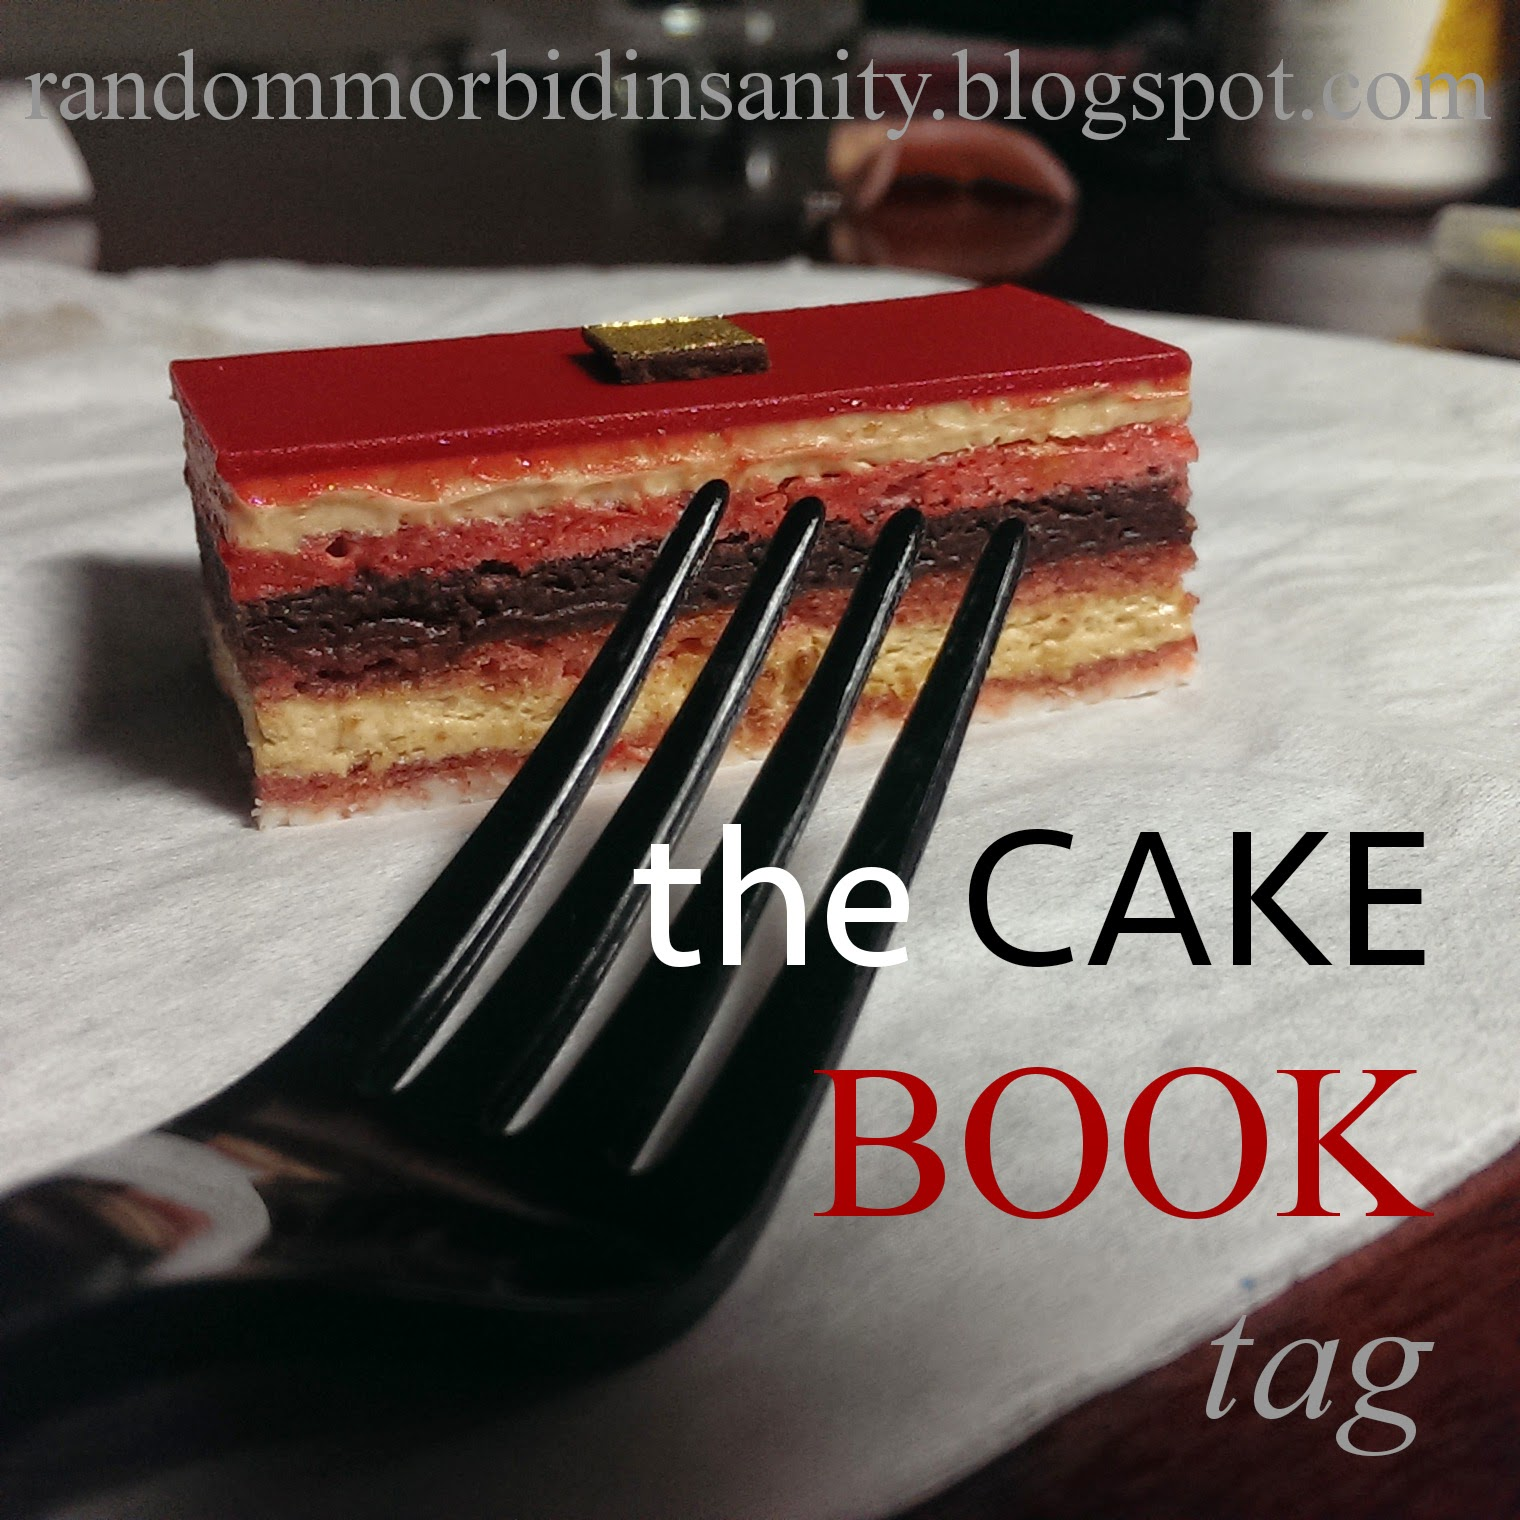 Cakes and books